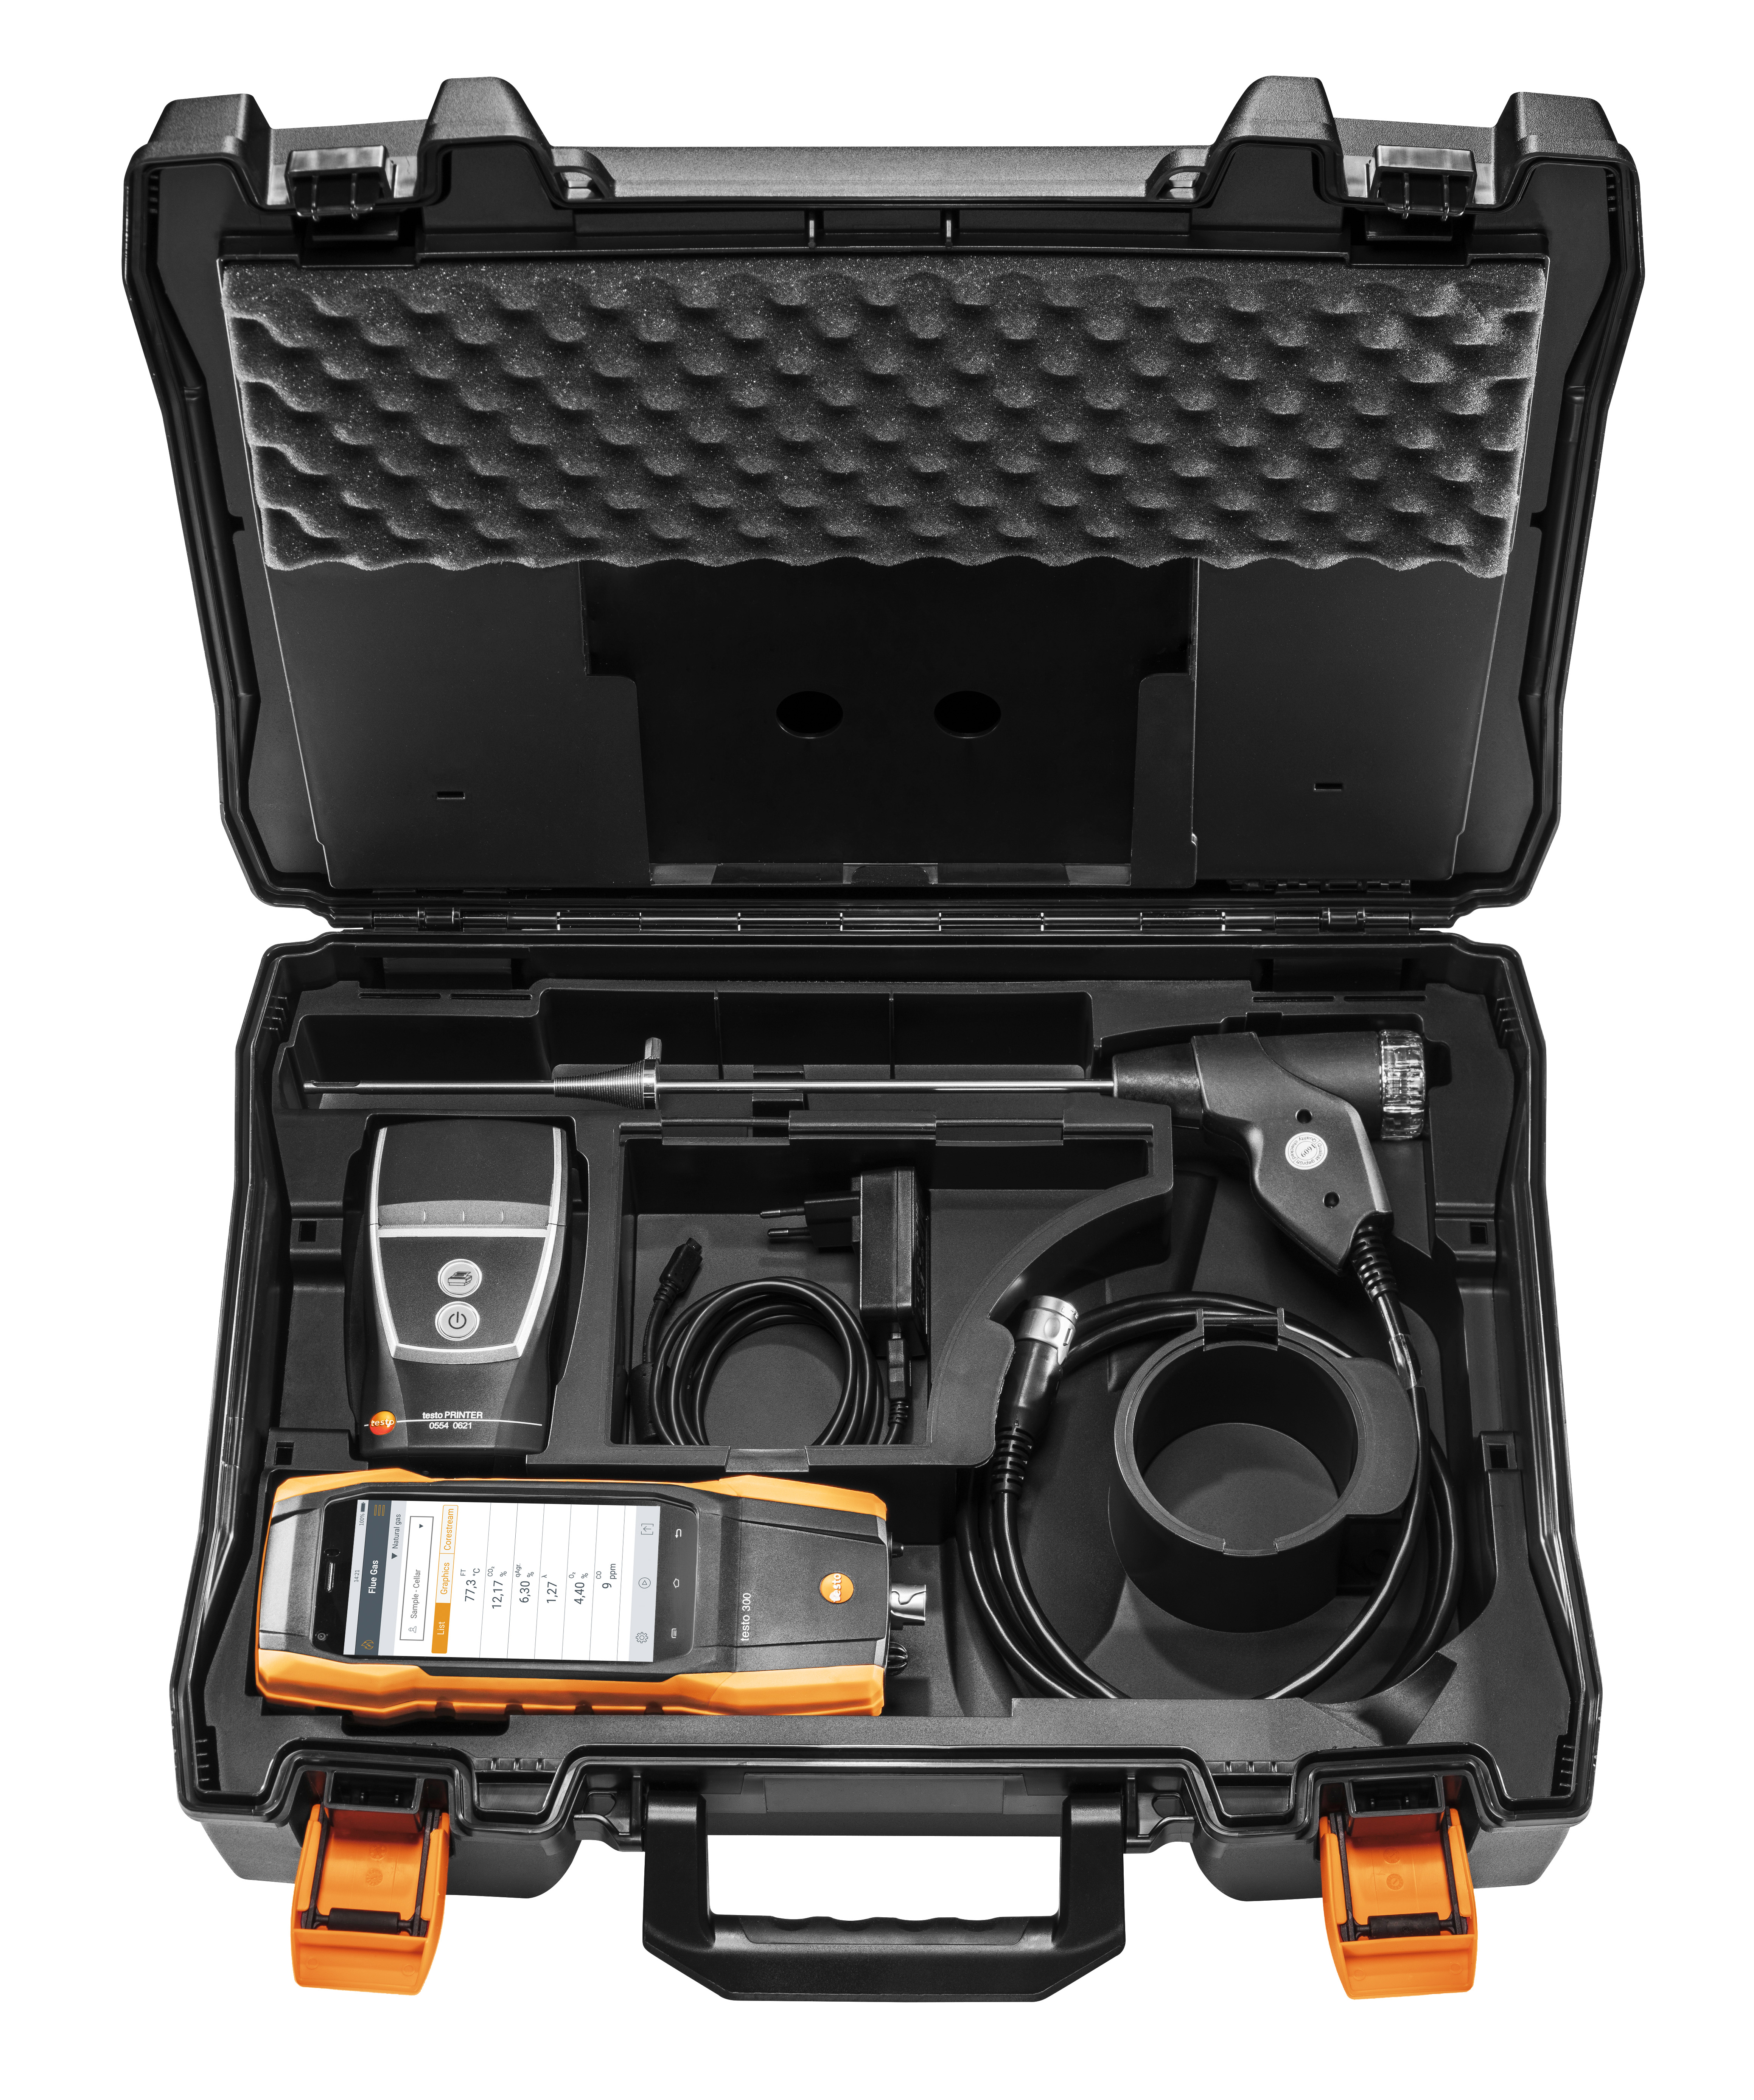 Testo 300 LL - Residential / Commercial Combustion Analyzer with Printer